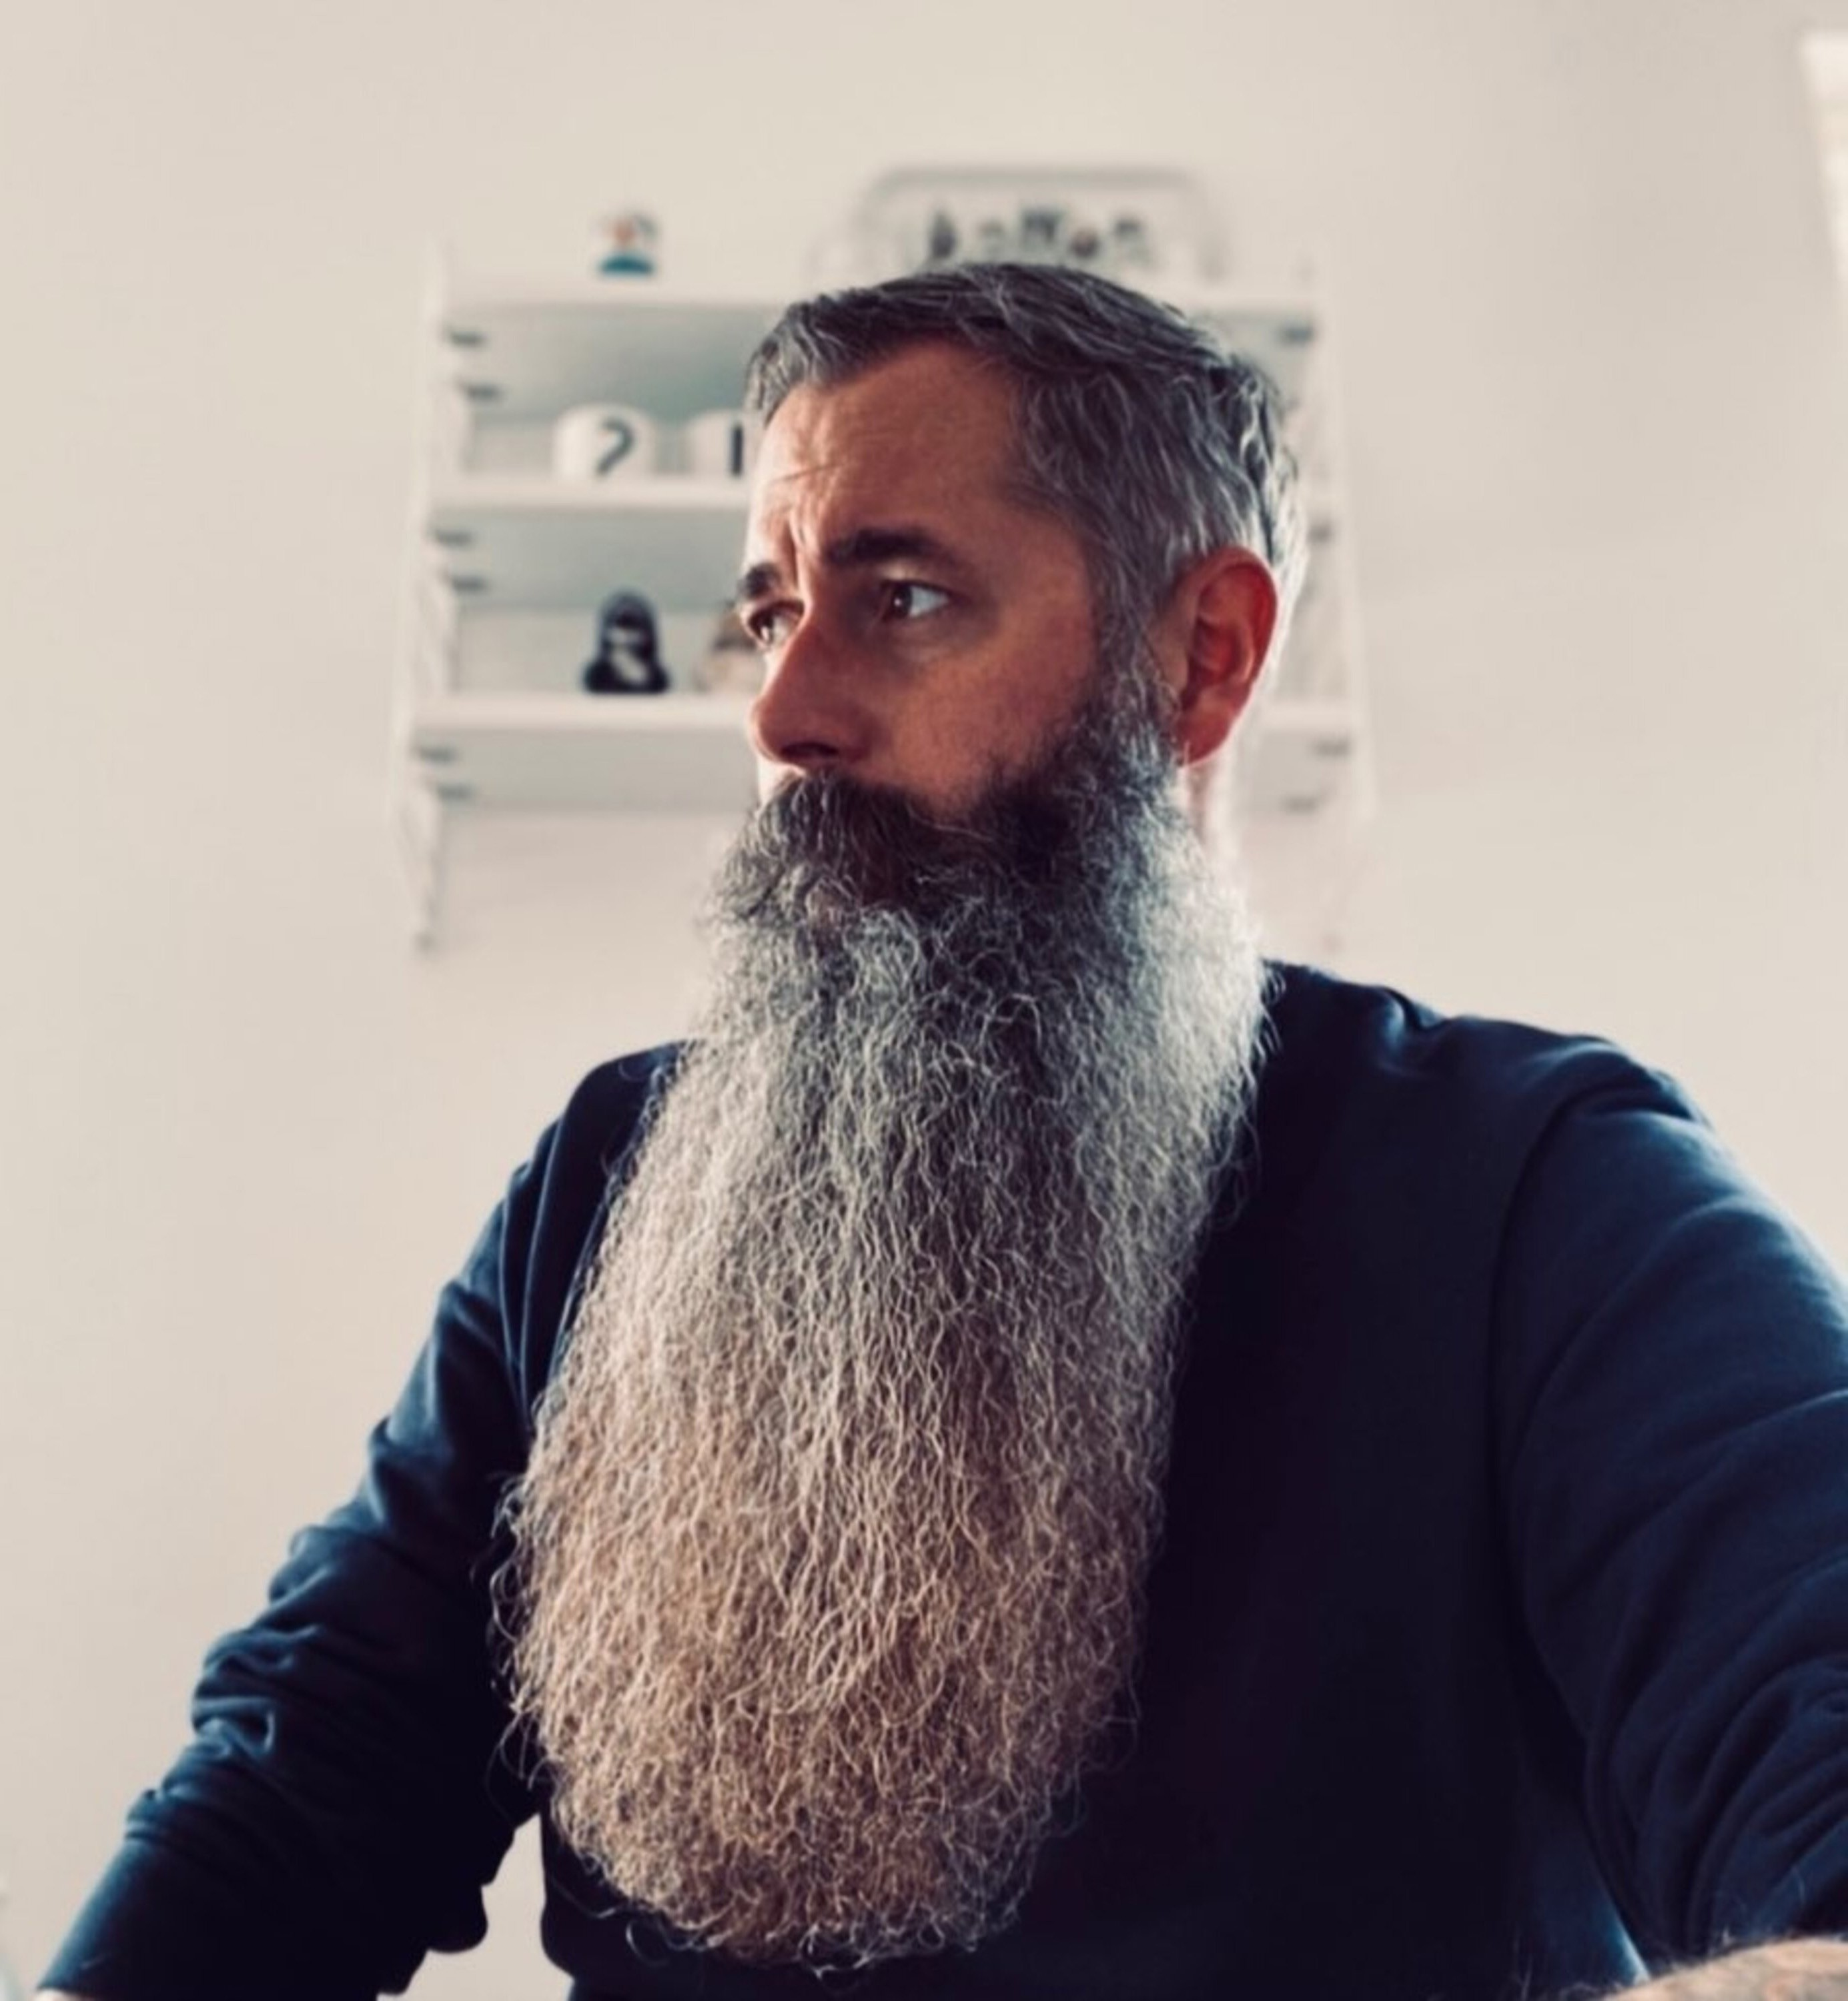 A long full beard for males.